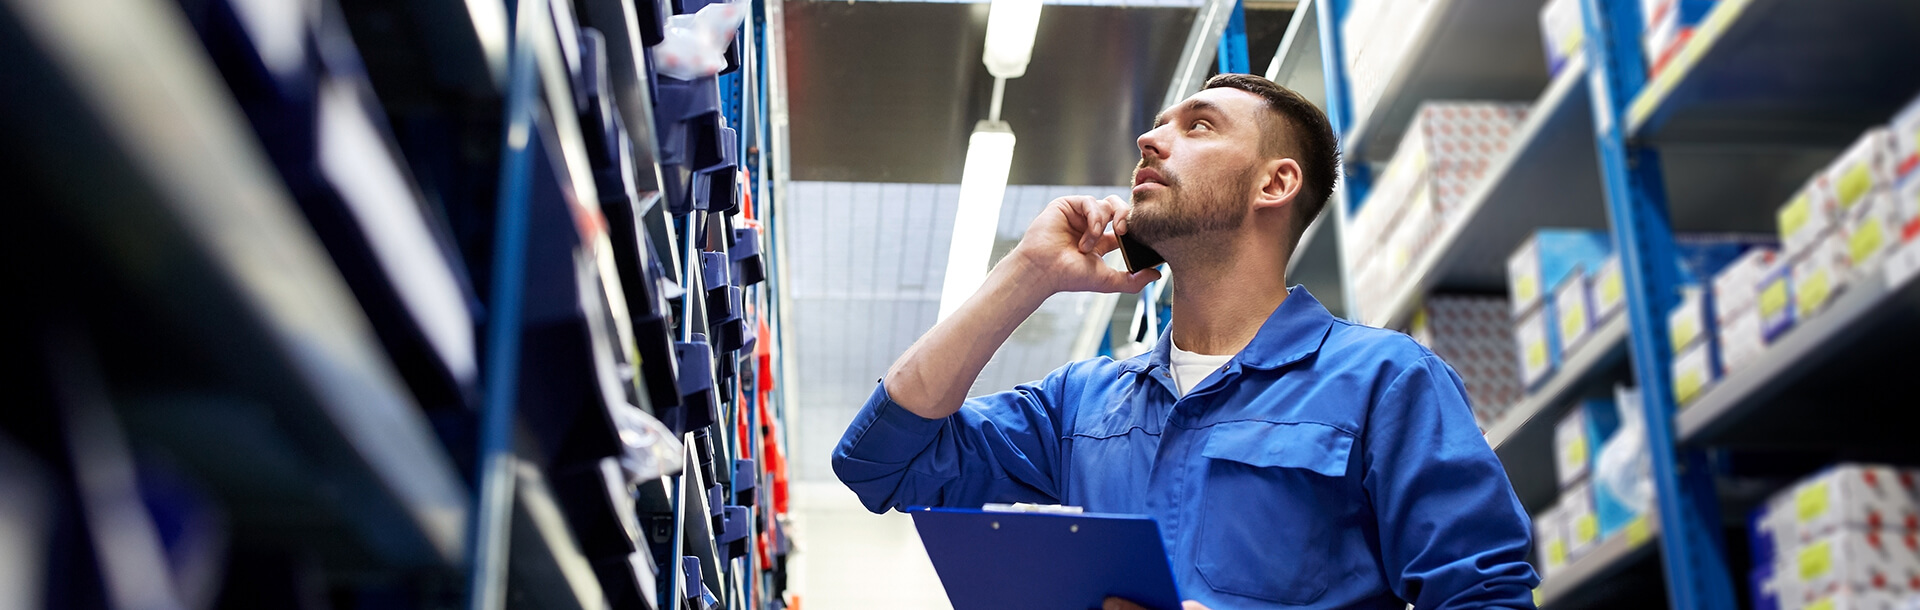 maslack employee looking at shelves while talking on cell phone